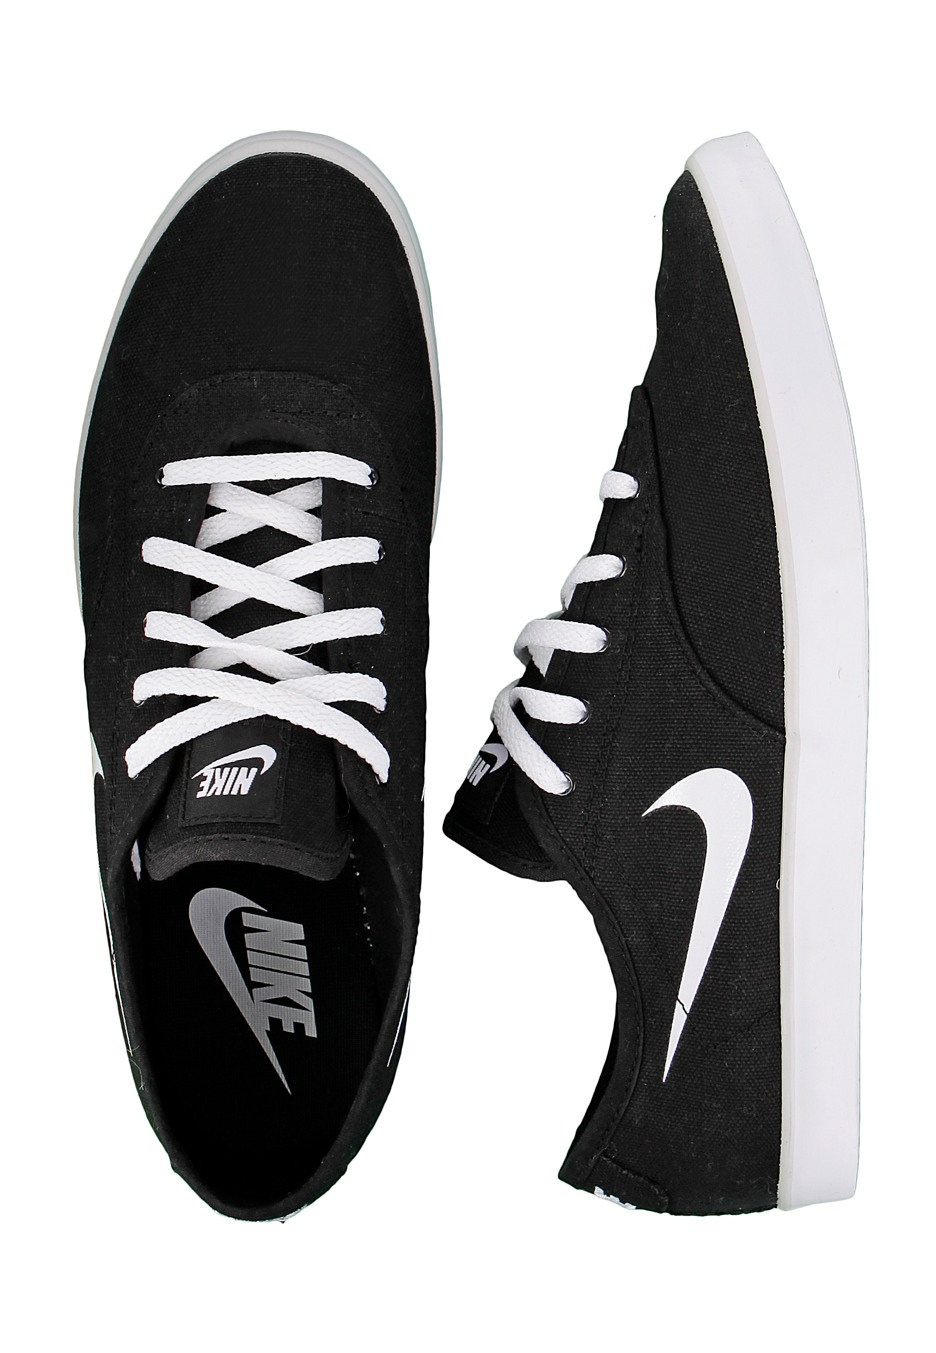 Nike - Starlet Saddle Black/White - Girl Schuhe - Offizieller Streetwear Online Shop - Impericon.com